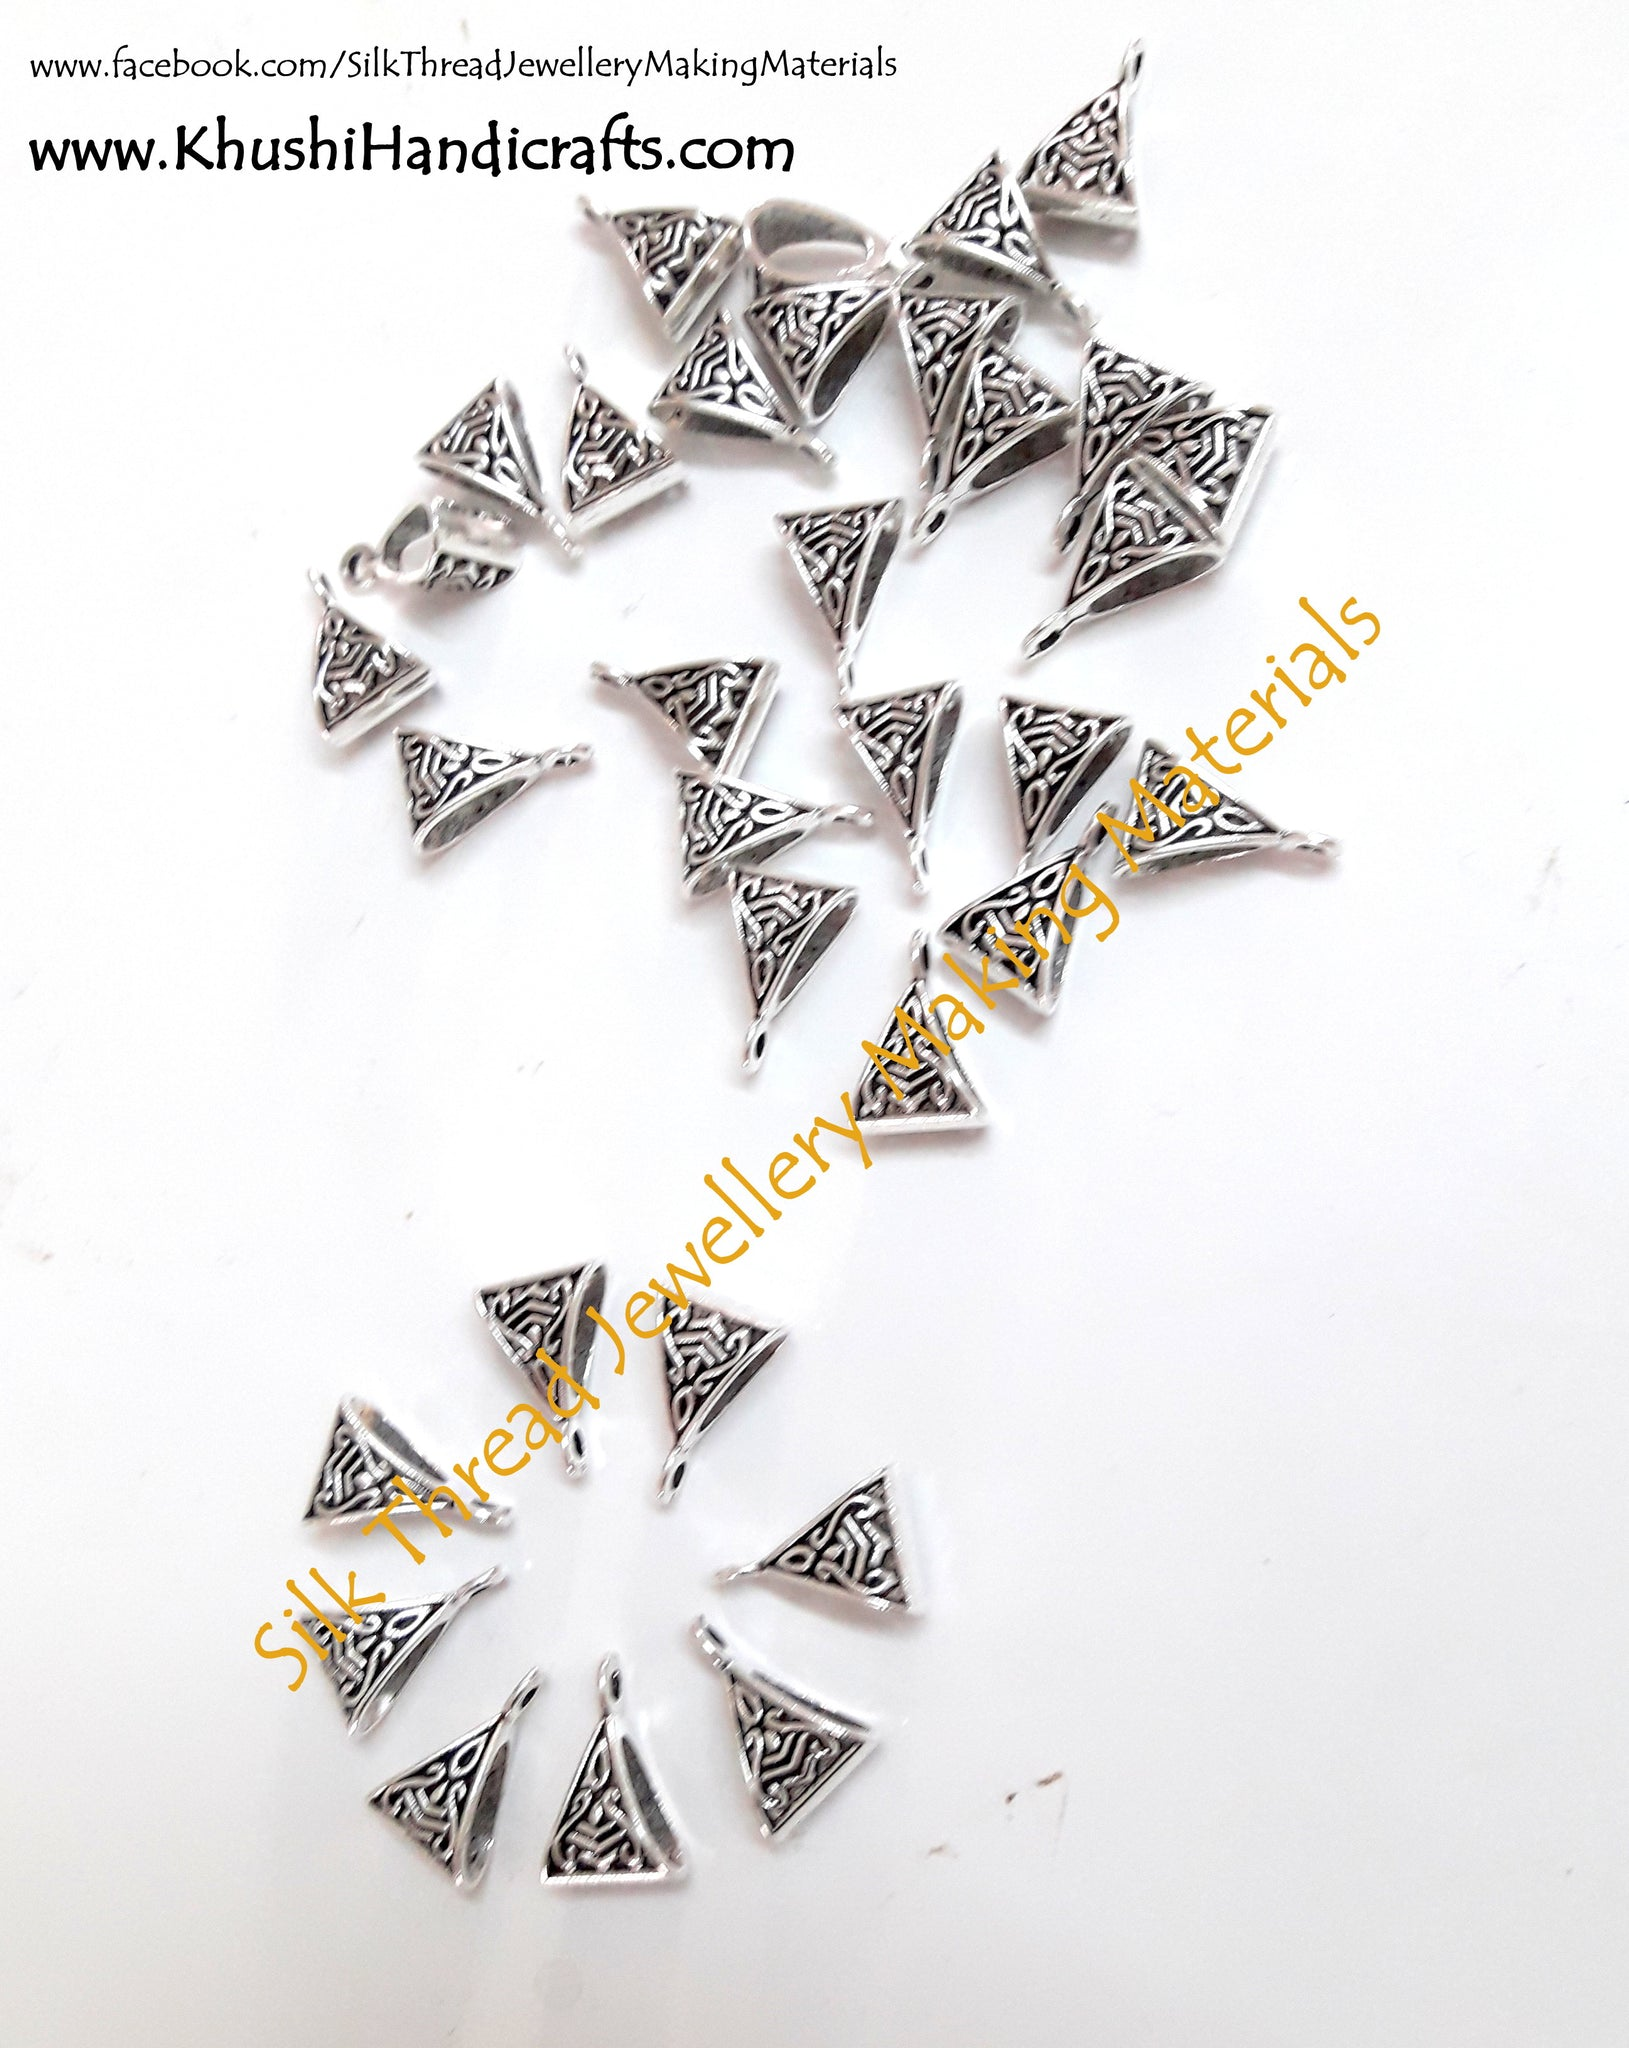 High Quality Antique Silver Triangular Bails - Khushi Handmade Jewellery